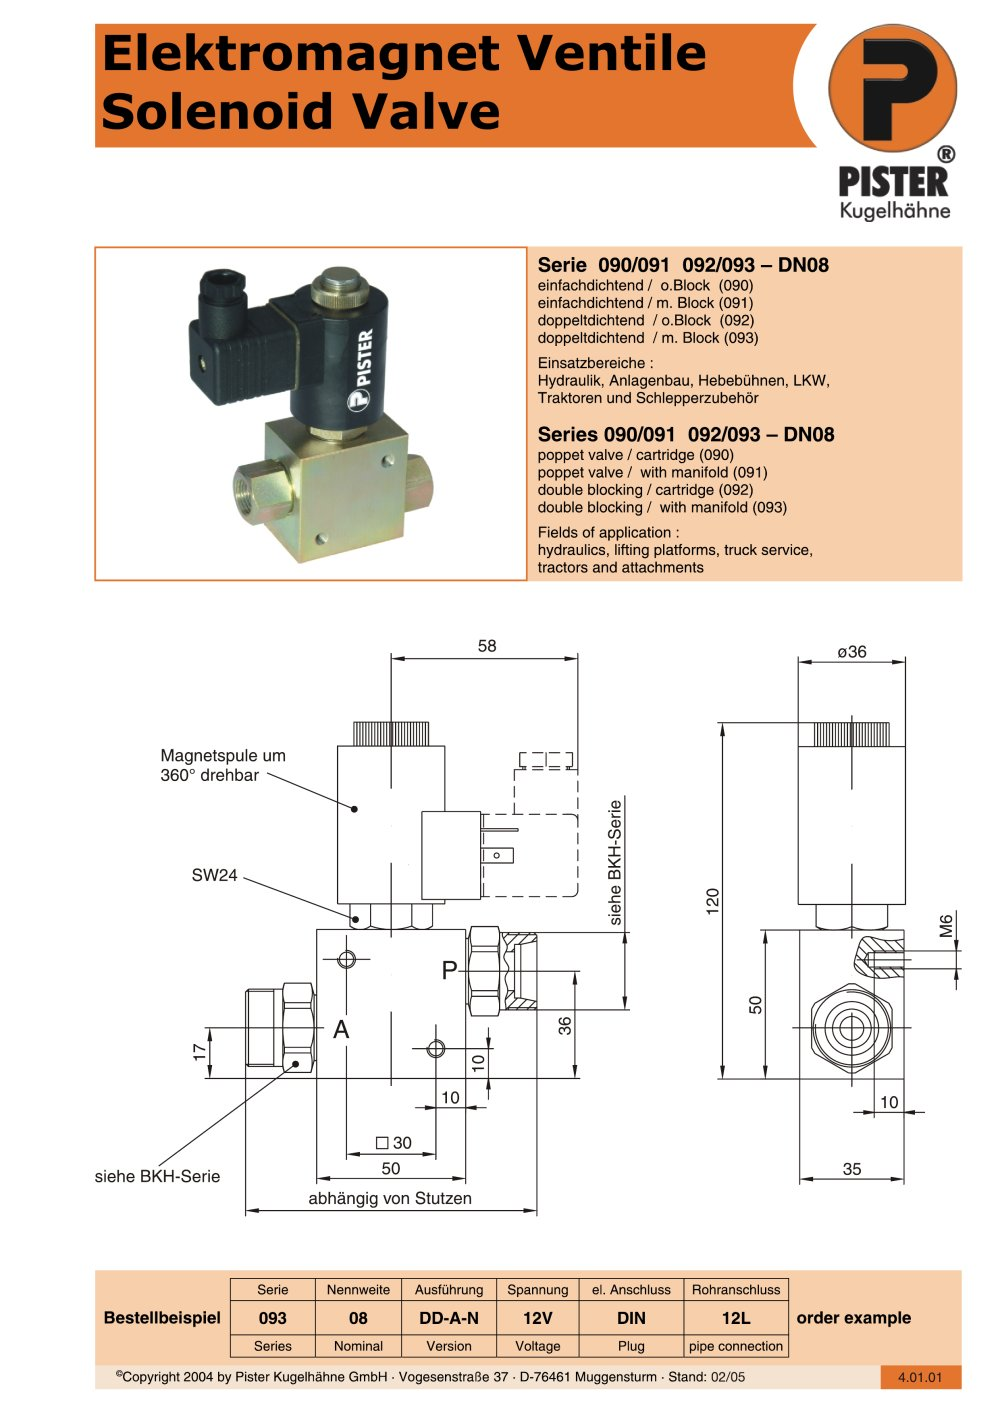 Solenoid Valve Pister Kugelhhne Pdf Catalogue Technical 12v Hydraulic Wiring Diagram 1 4 Pages